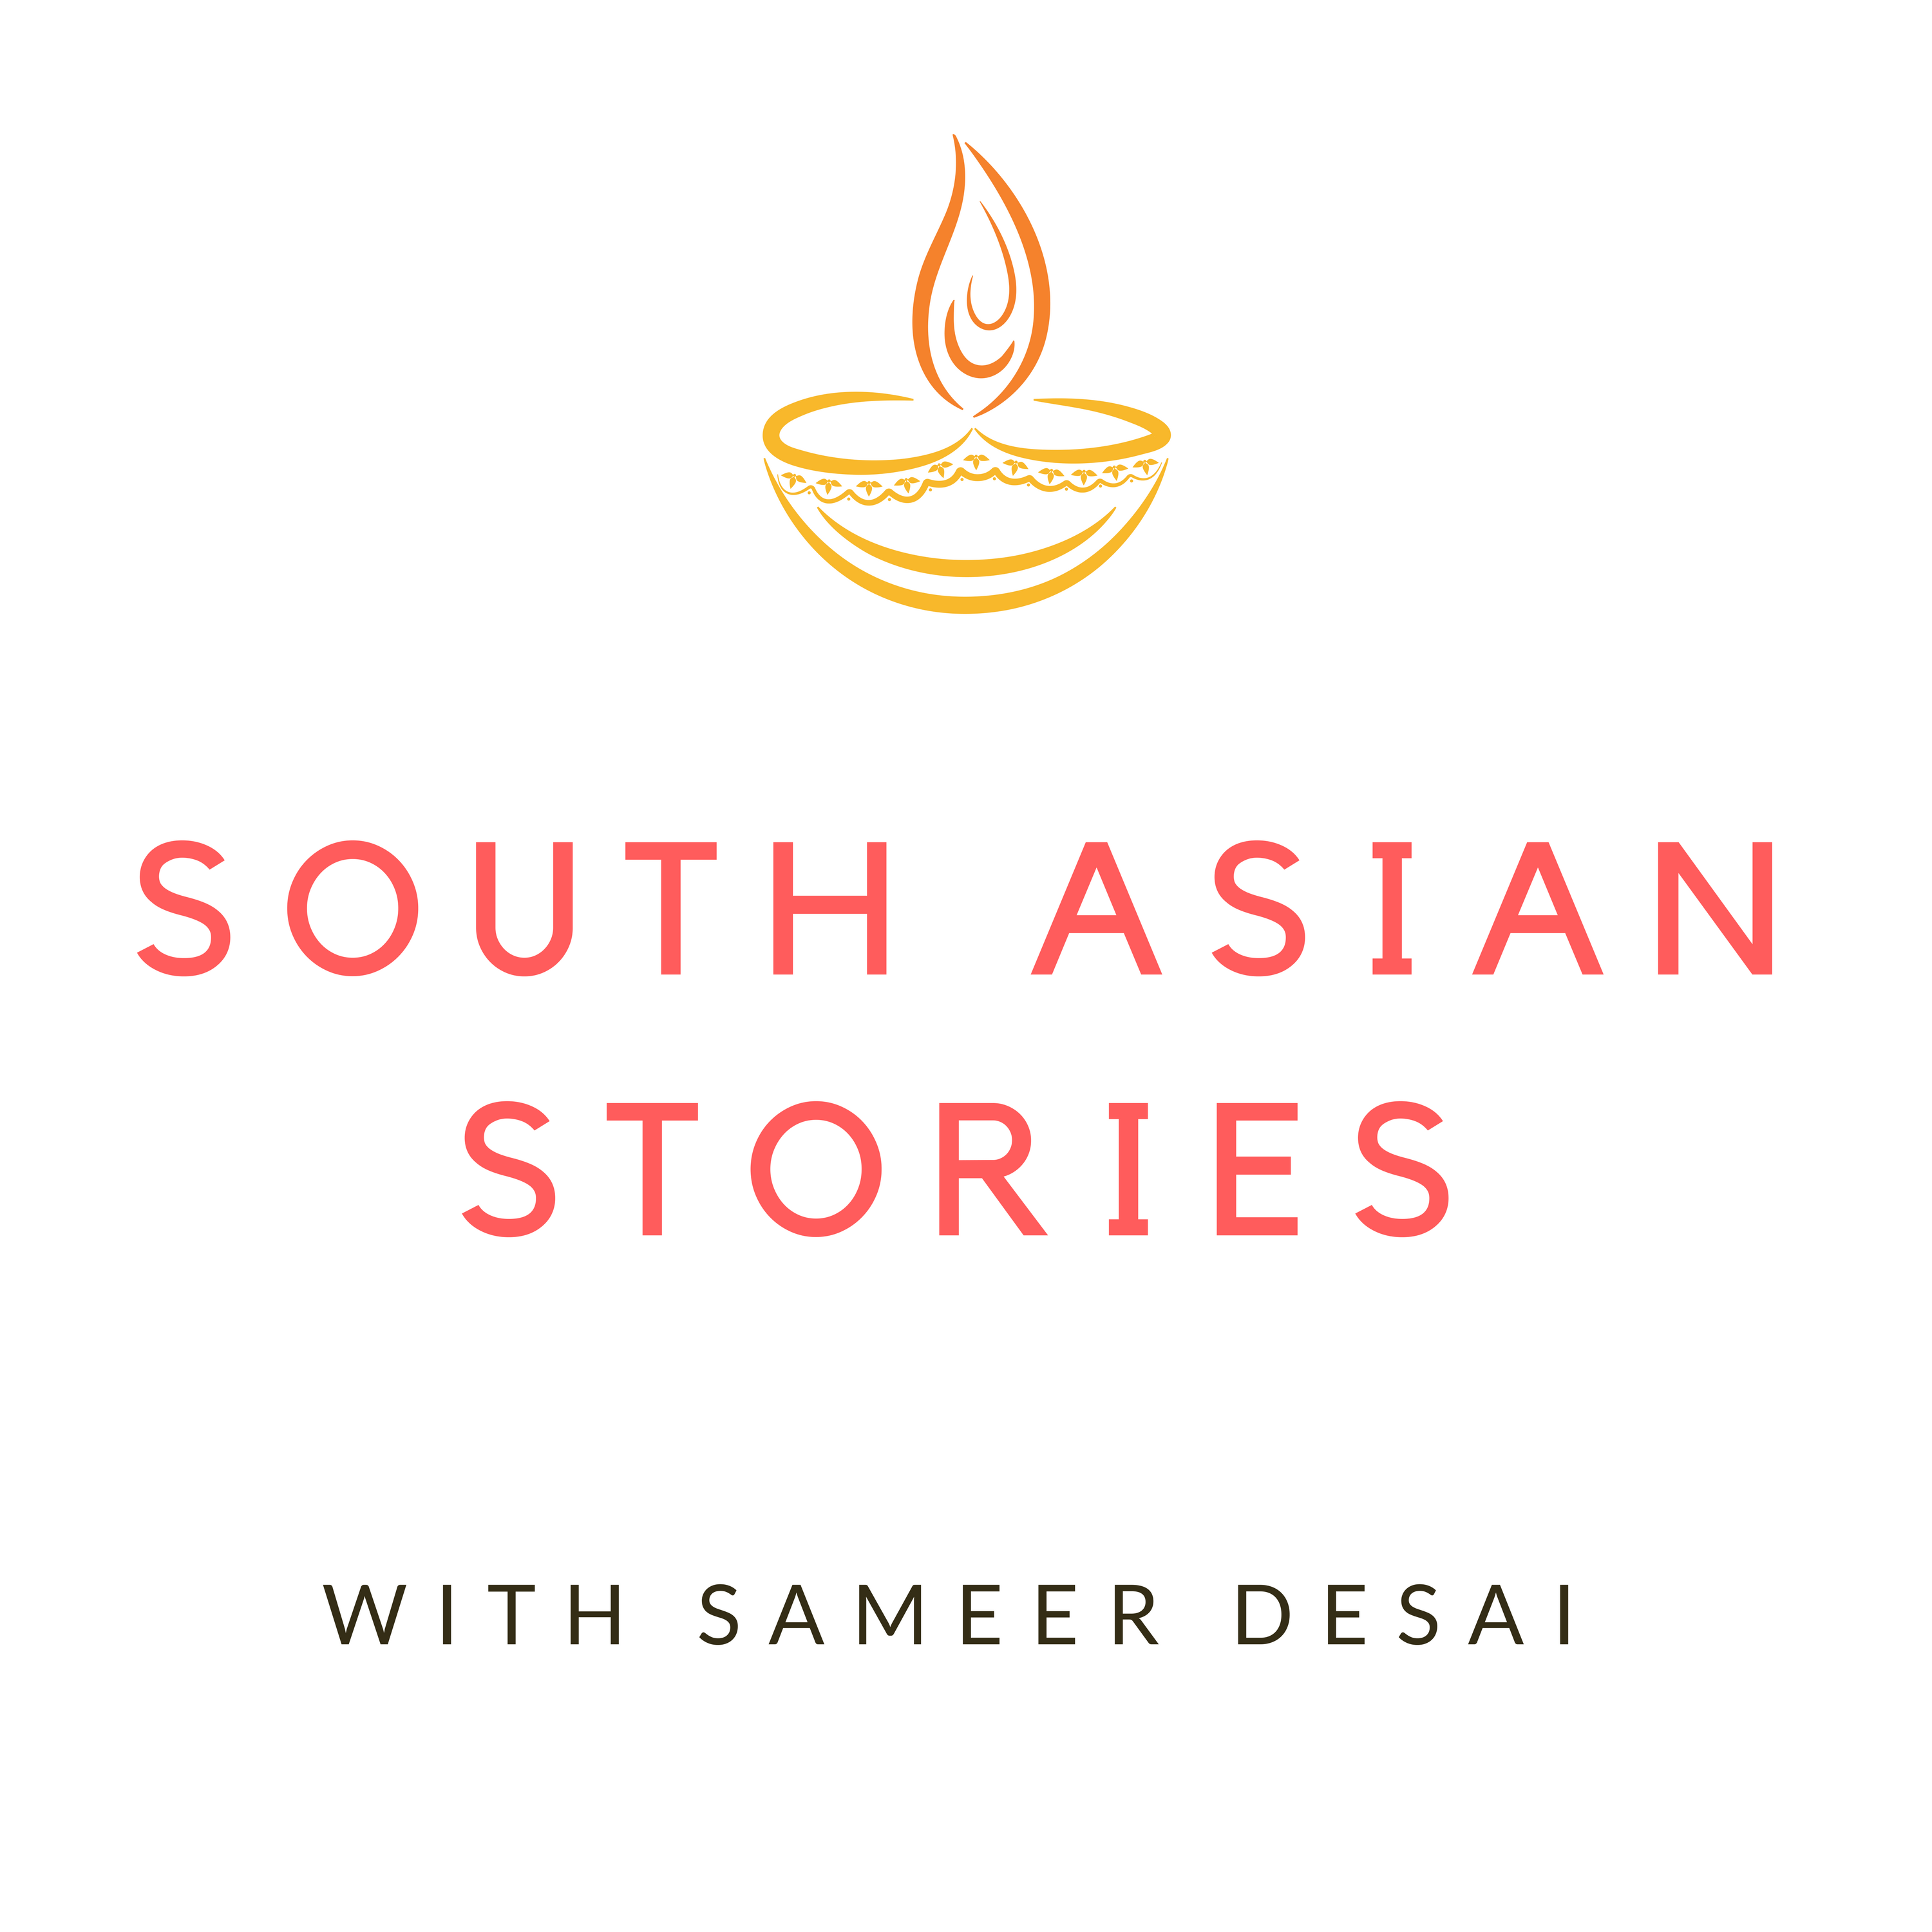 Episode 3 Srihari Sritharan Dr Srimix How To Become A Top Dj Simple And Useful Led Circuits Rao With Millions Of Listeners South Asian Stories Podcast